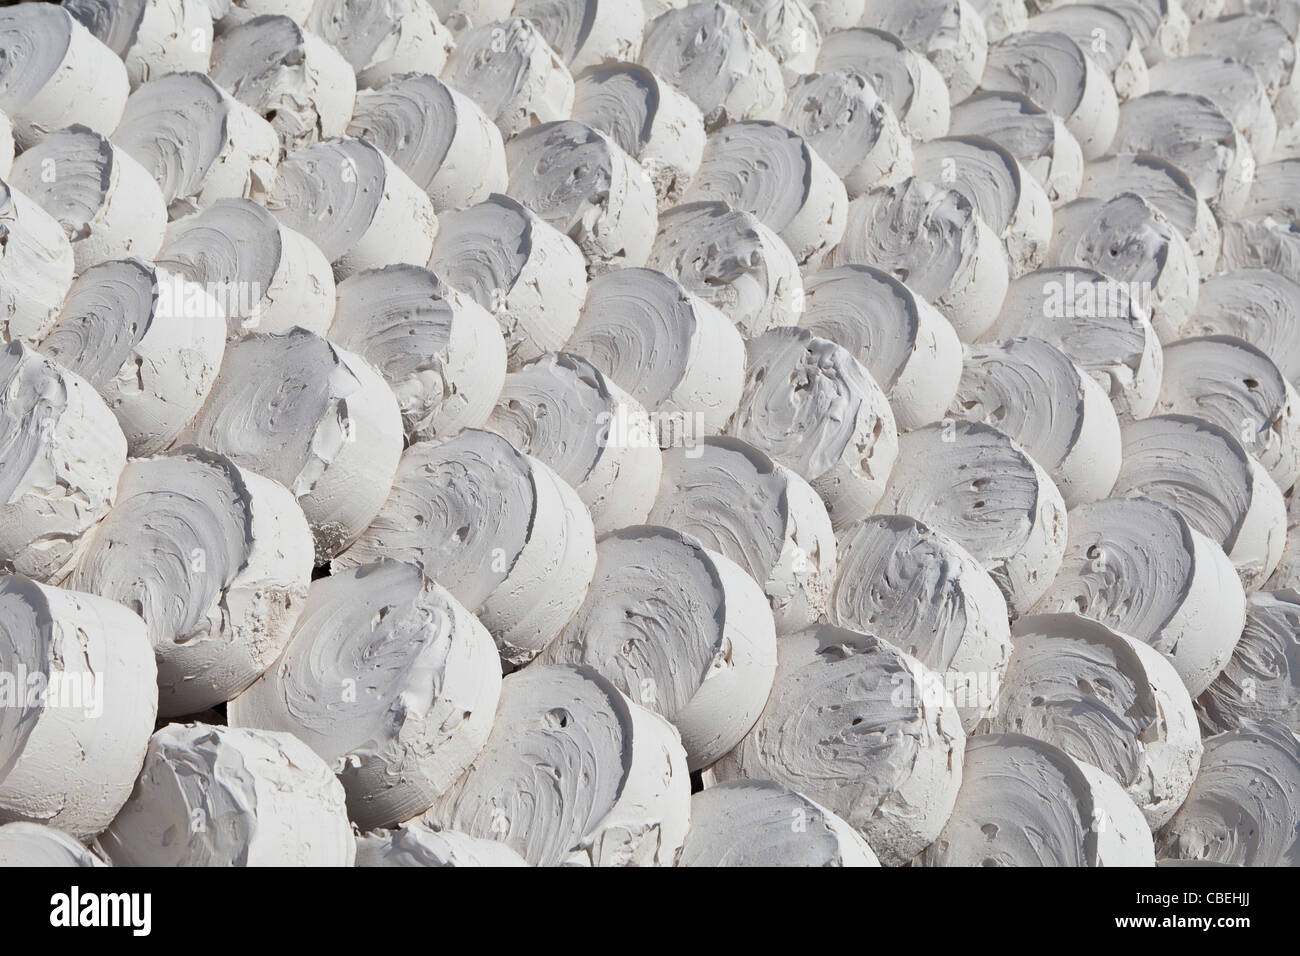 Lumps of drying marl or marlstone - Stock Image